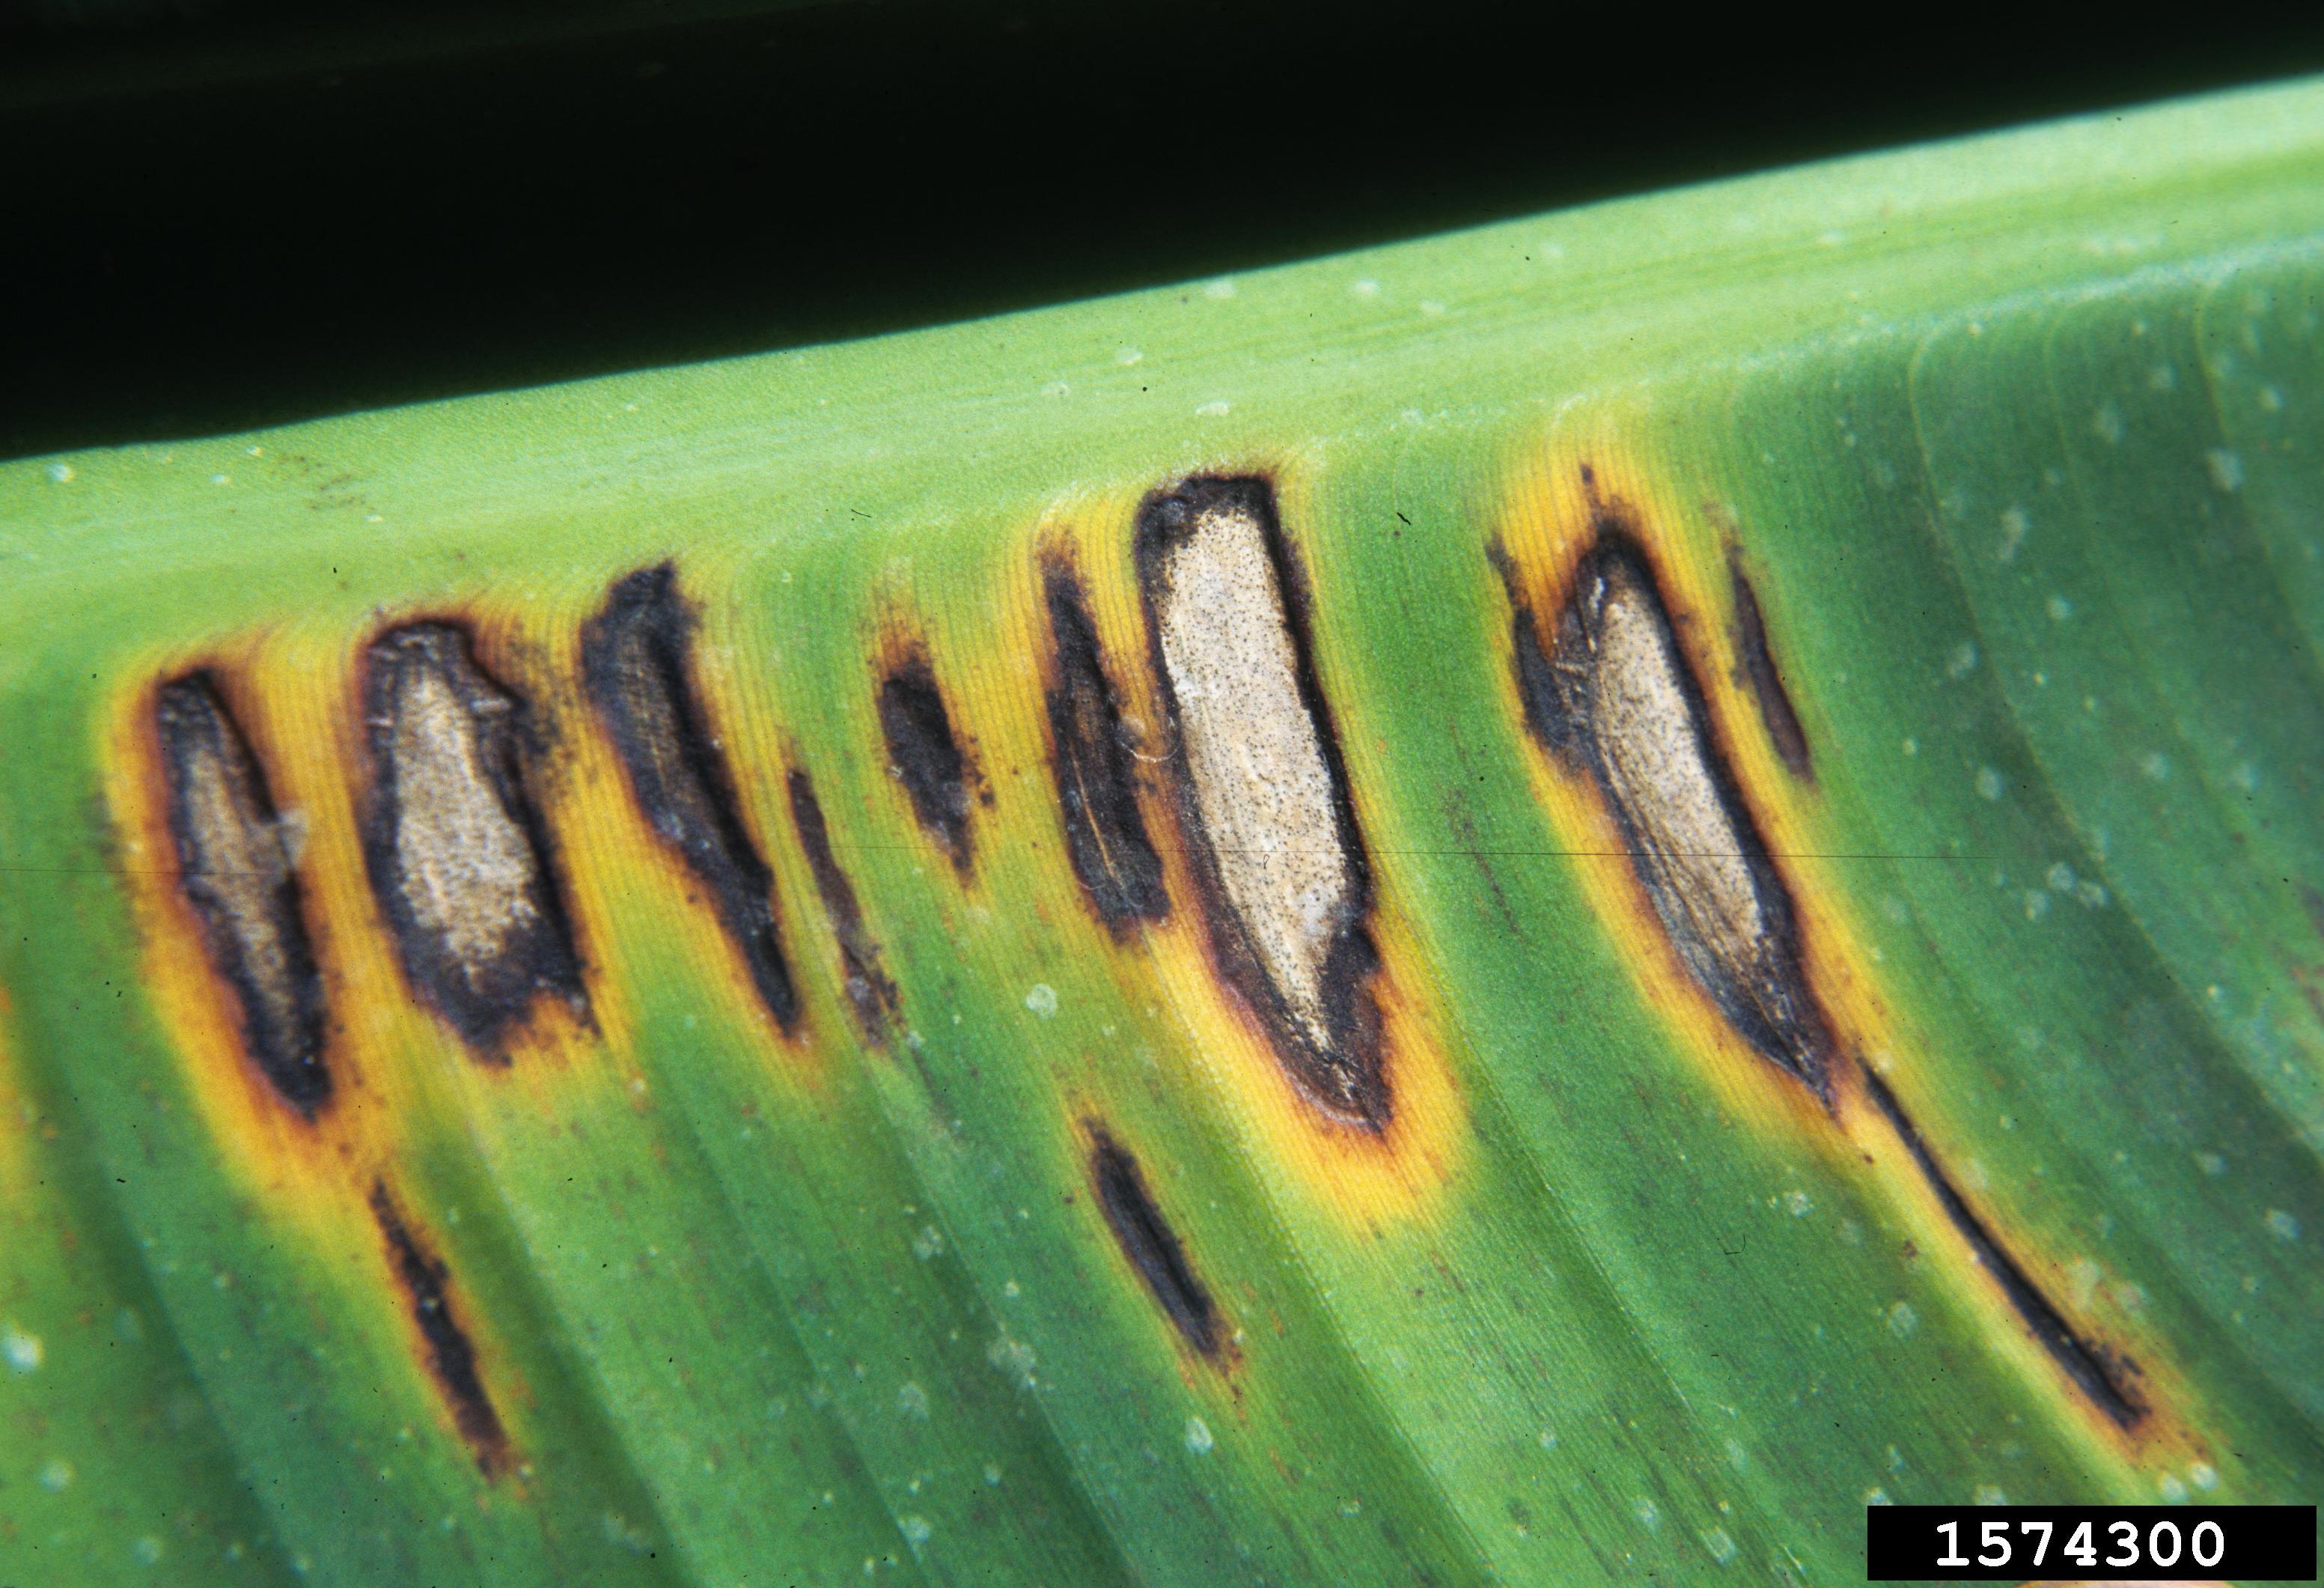 Banana leaf with fungal lesions that are dead at the centre, have a black margin and surrounded by yellow